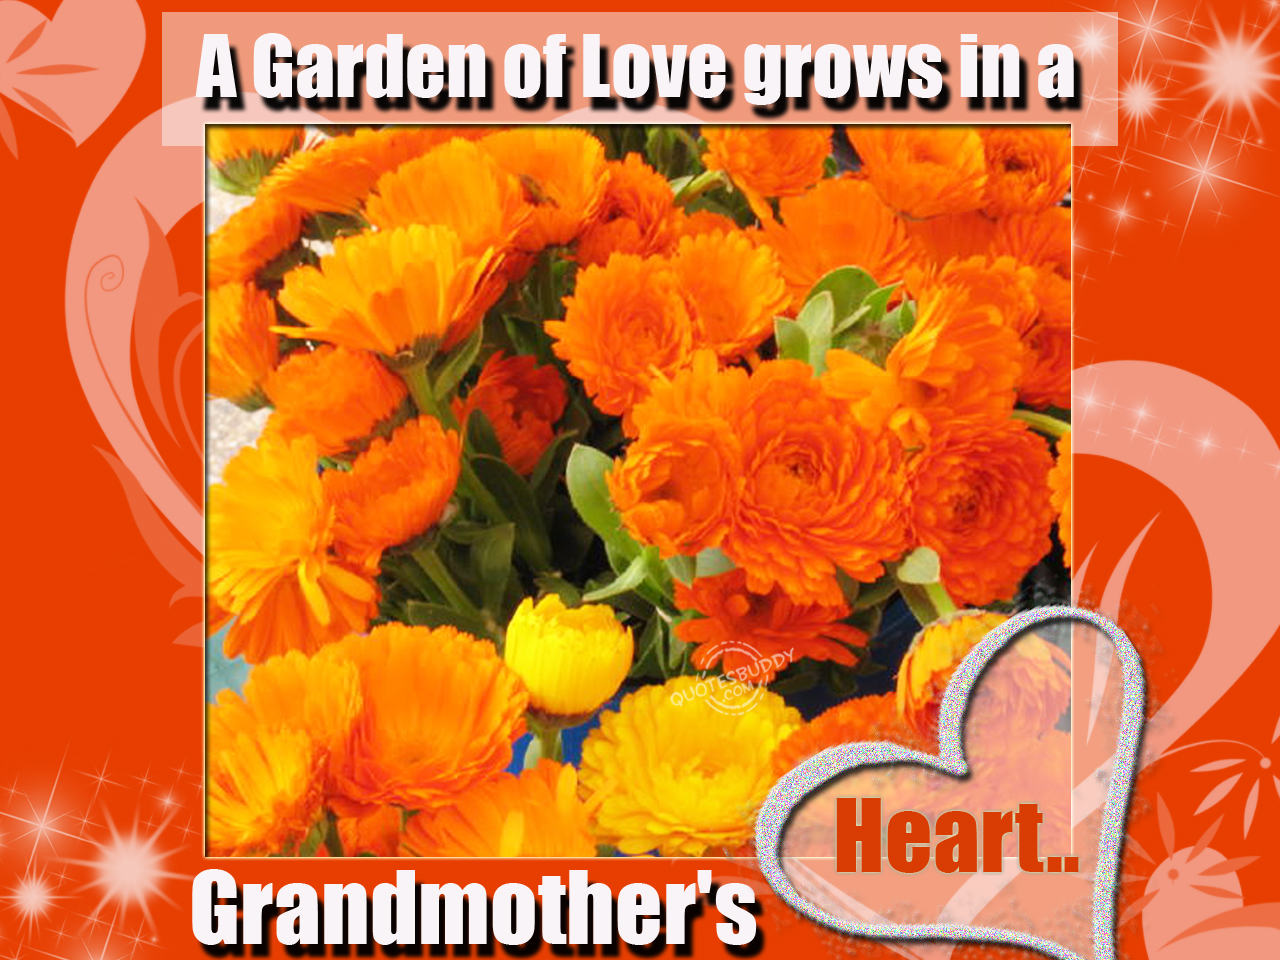 A Garden Of Love Grows In A Grandmother's Heart.